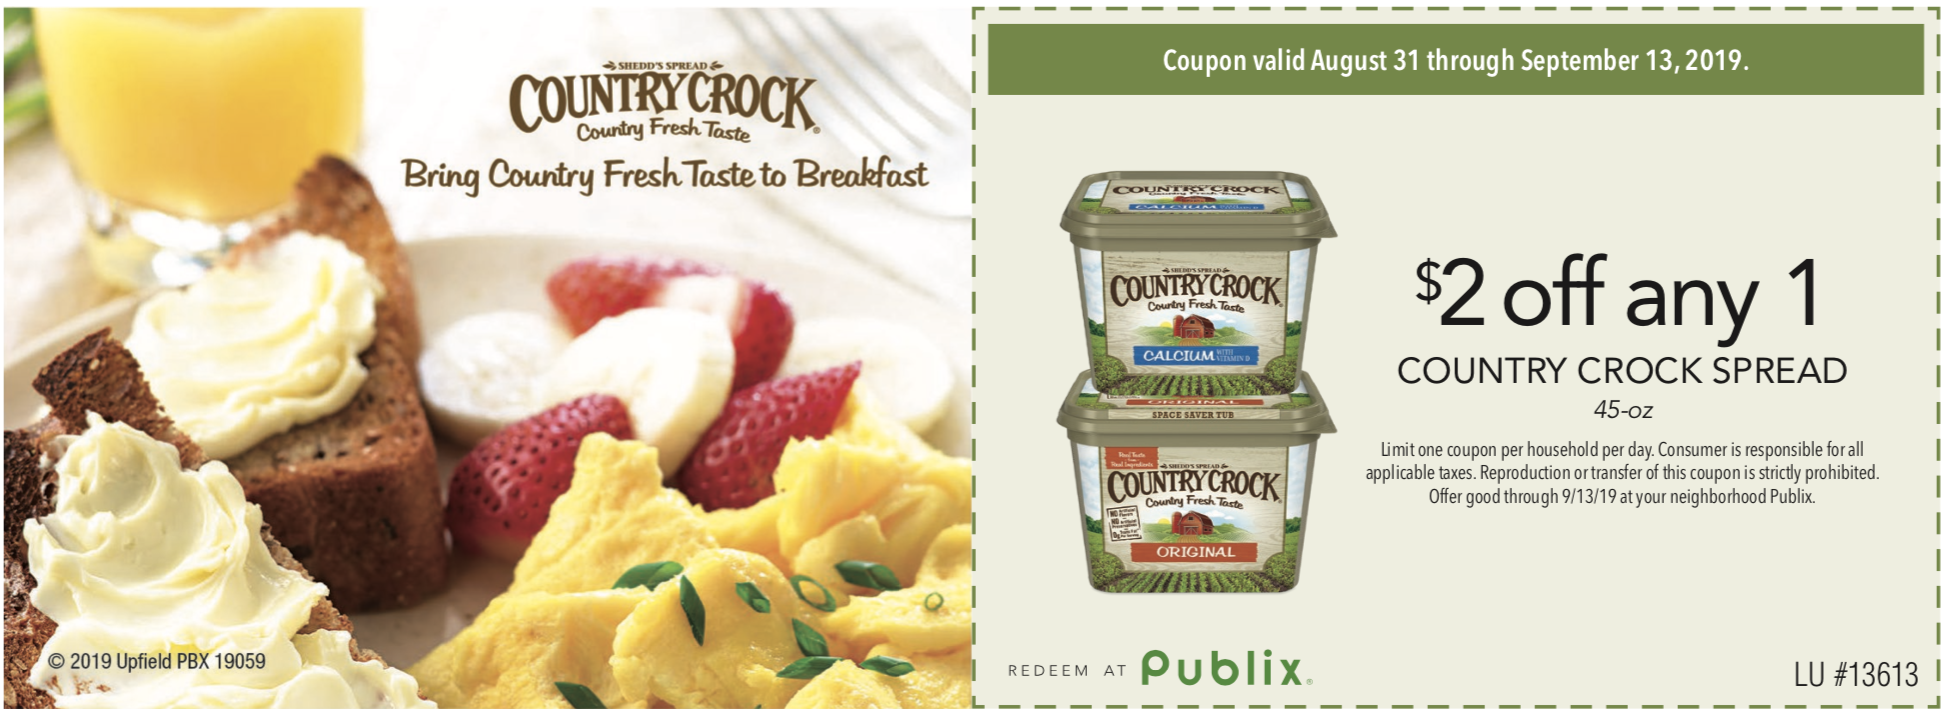 Big Tub Of Country Crock Spread Just $1.99 At Publix - Less Than Half Price! on I Heart Publix